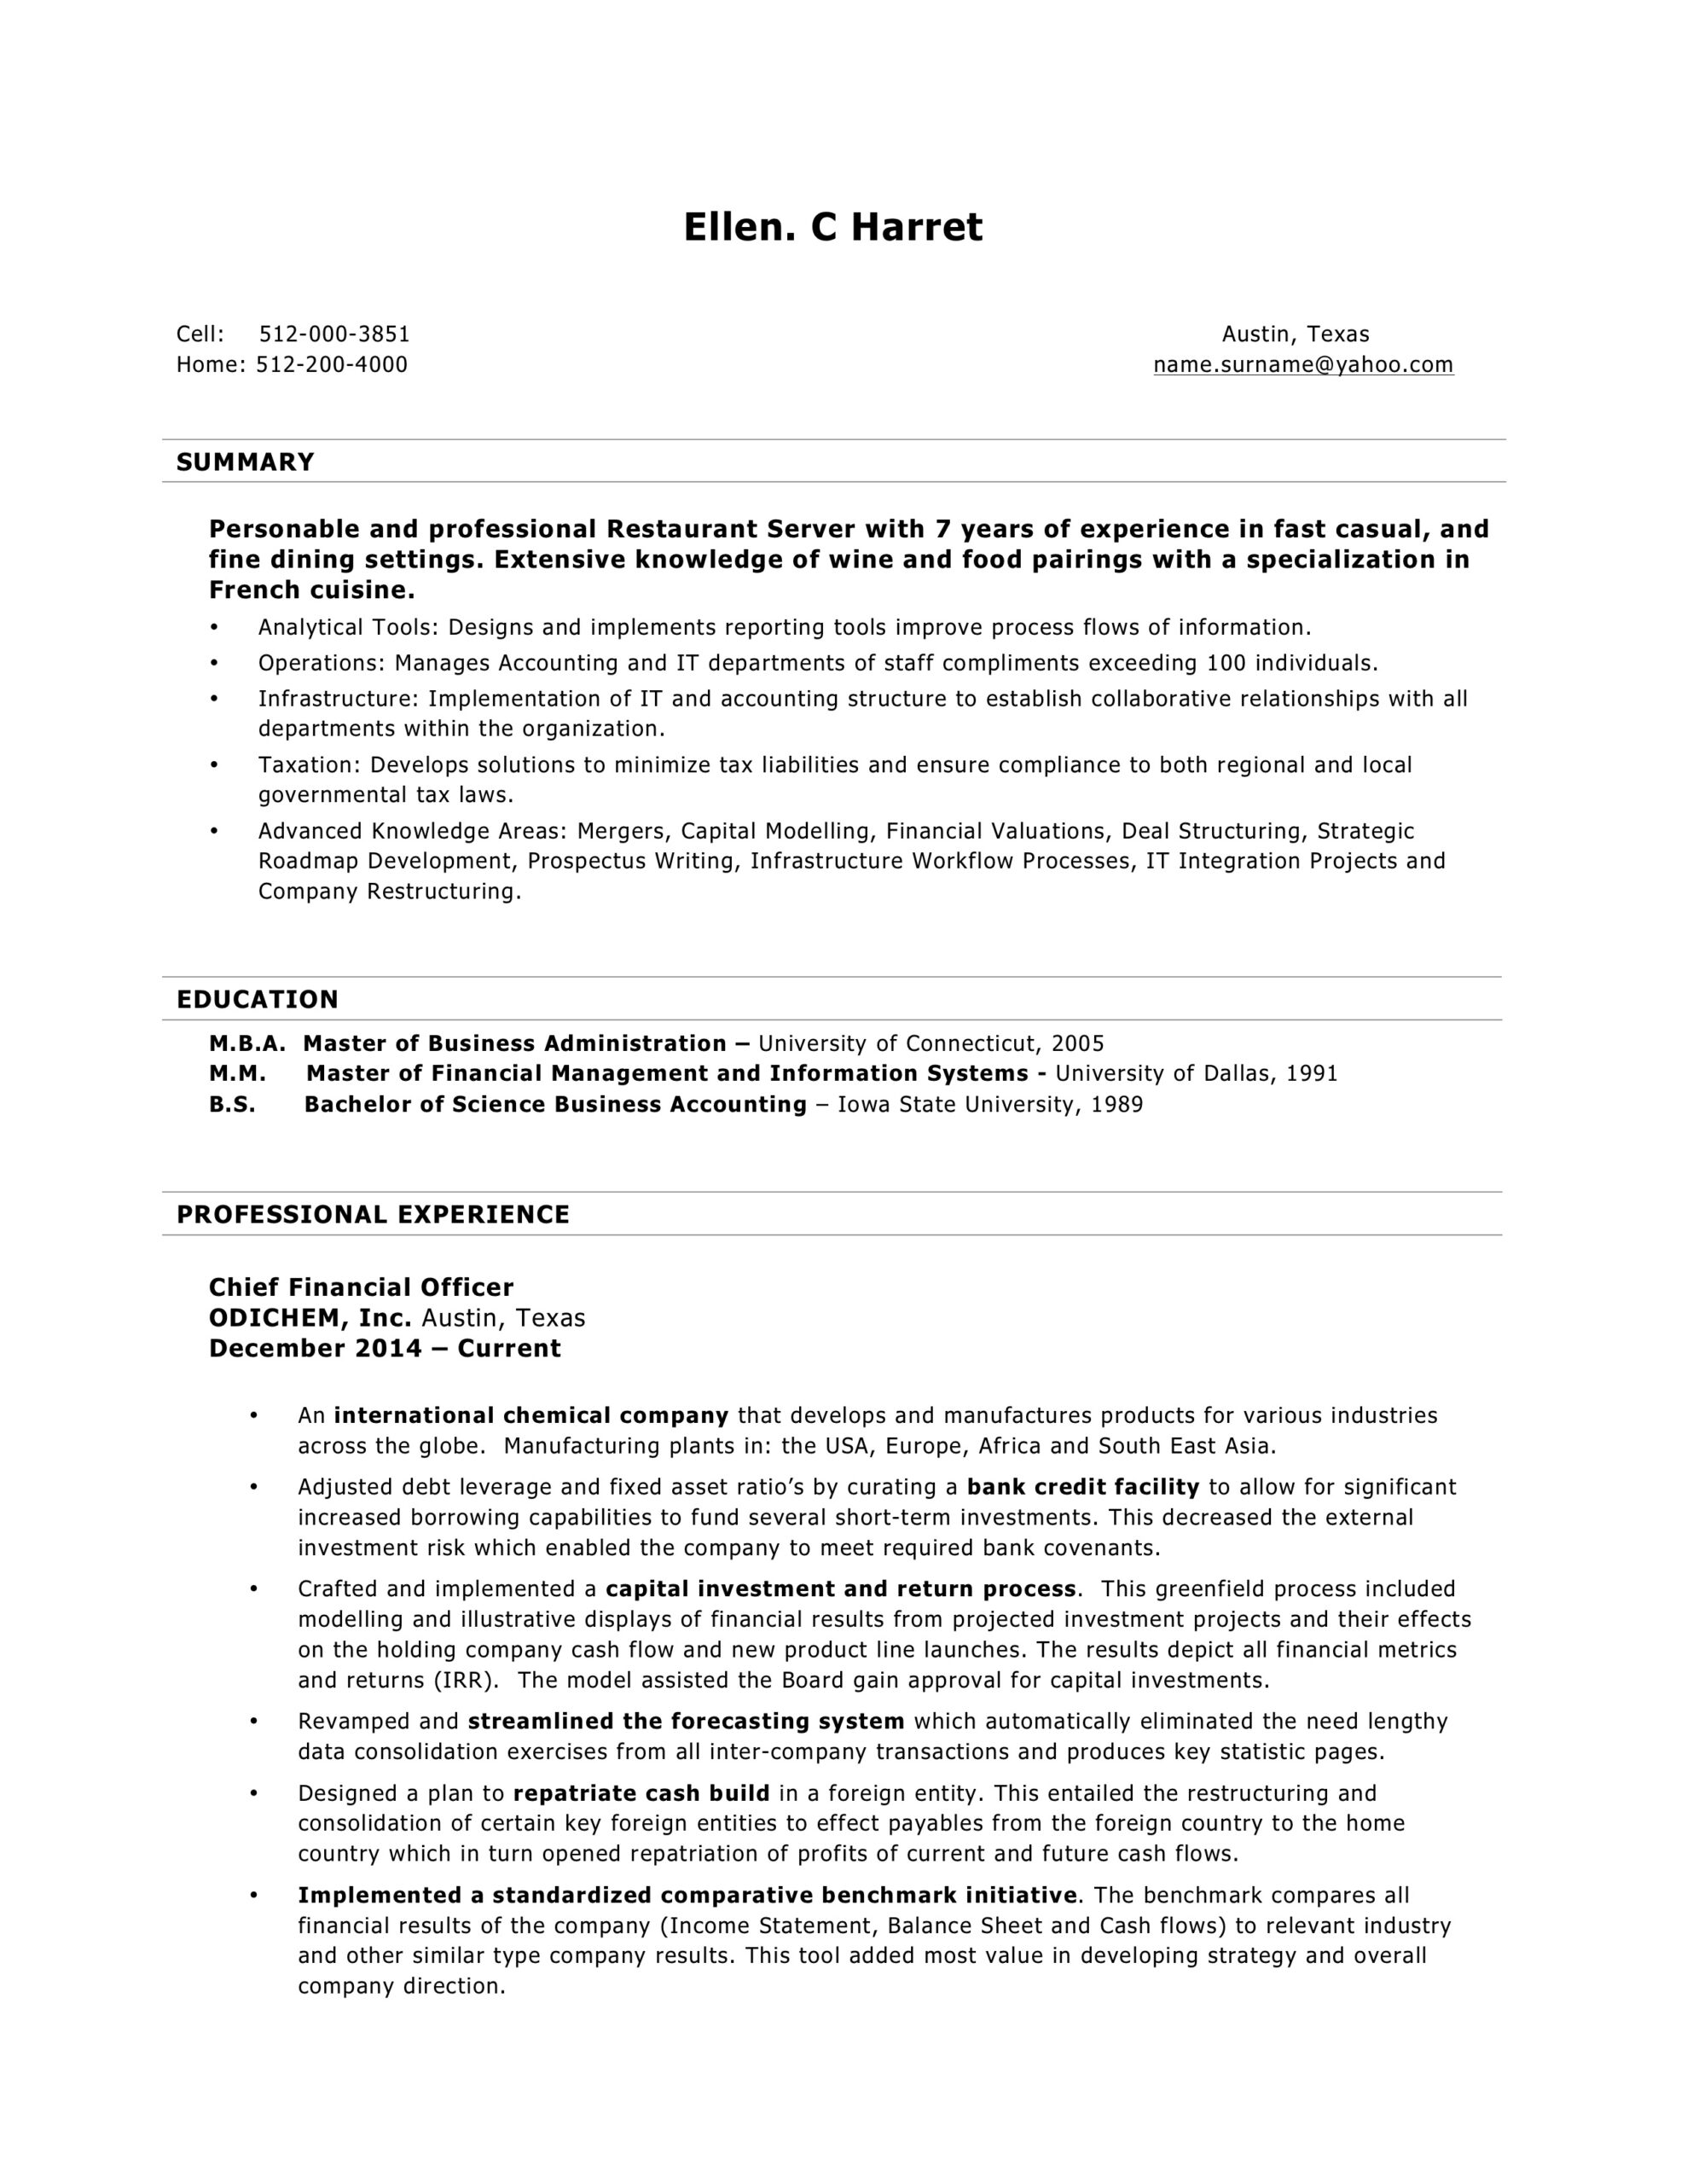 free word resume templates in ms server description for template senior electronics Resume Server Description For Resume